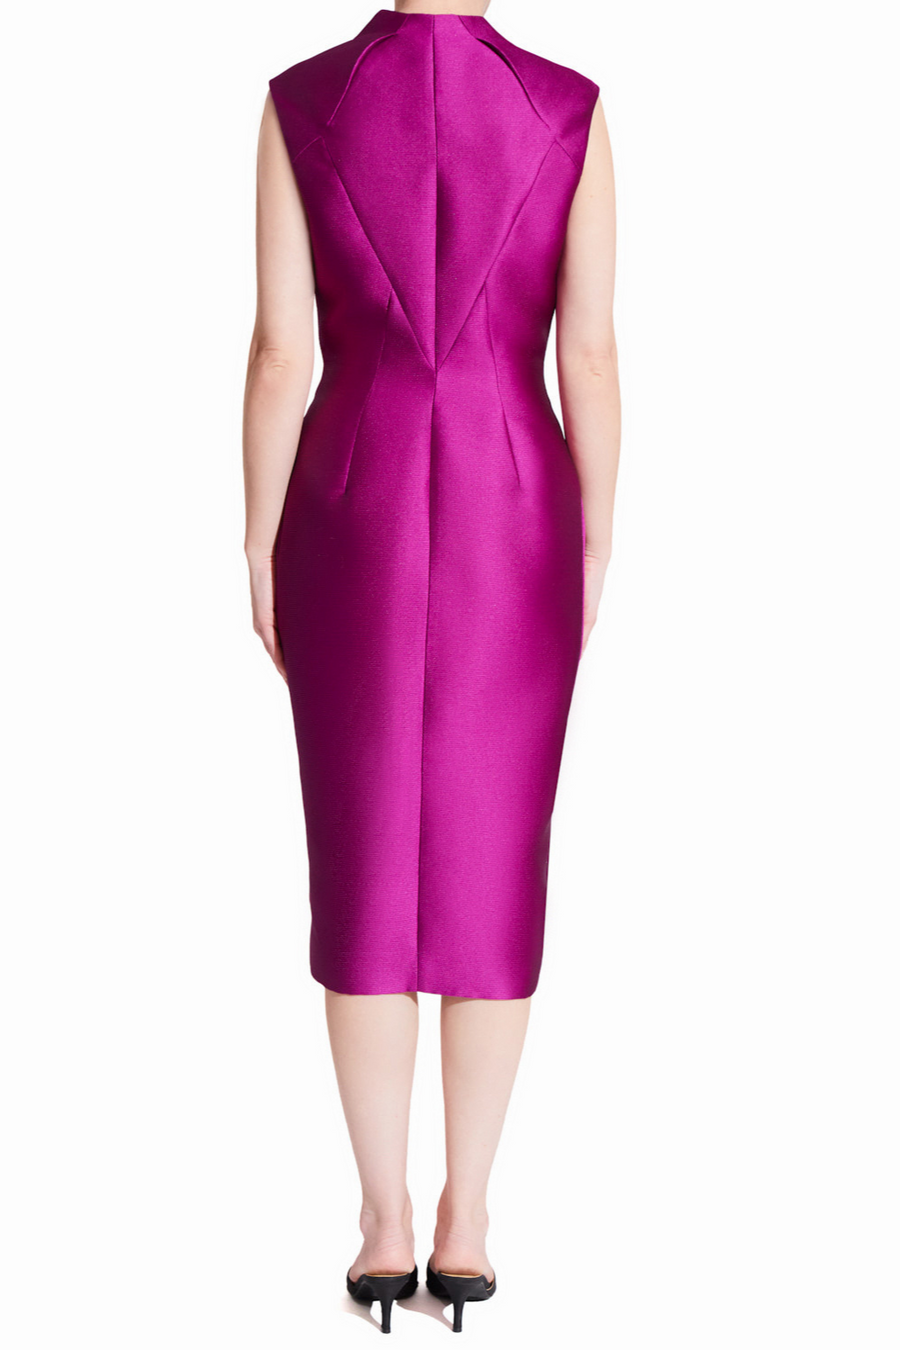 Rasberry purple sleeveless midi cocktail party dress with two-way gold zipper and adjustable front slit. The dress has a straight fit with a round high neck